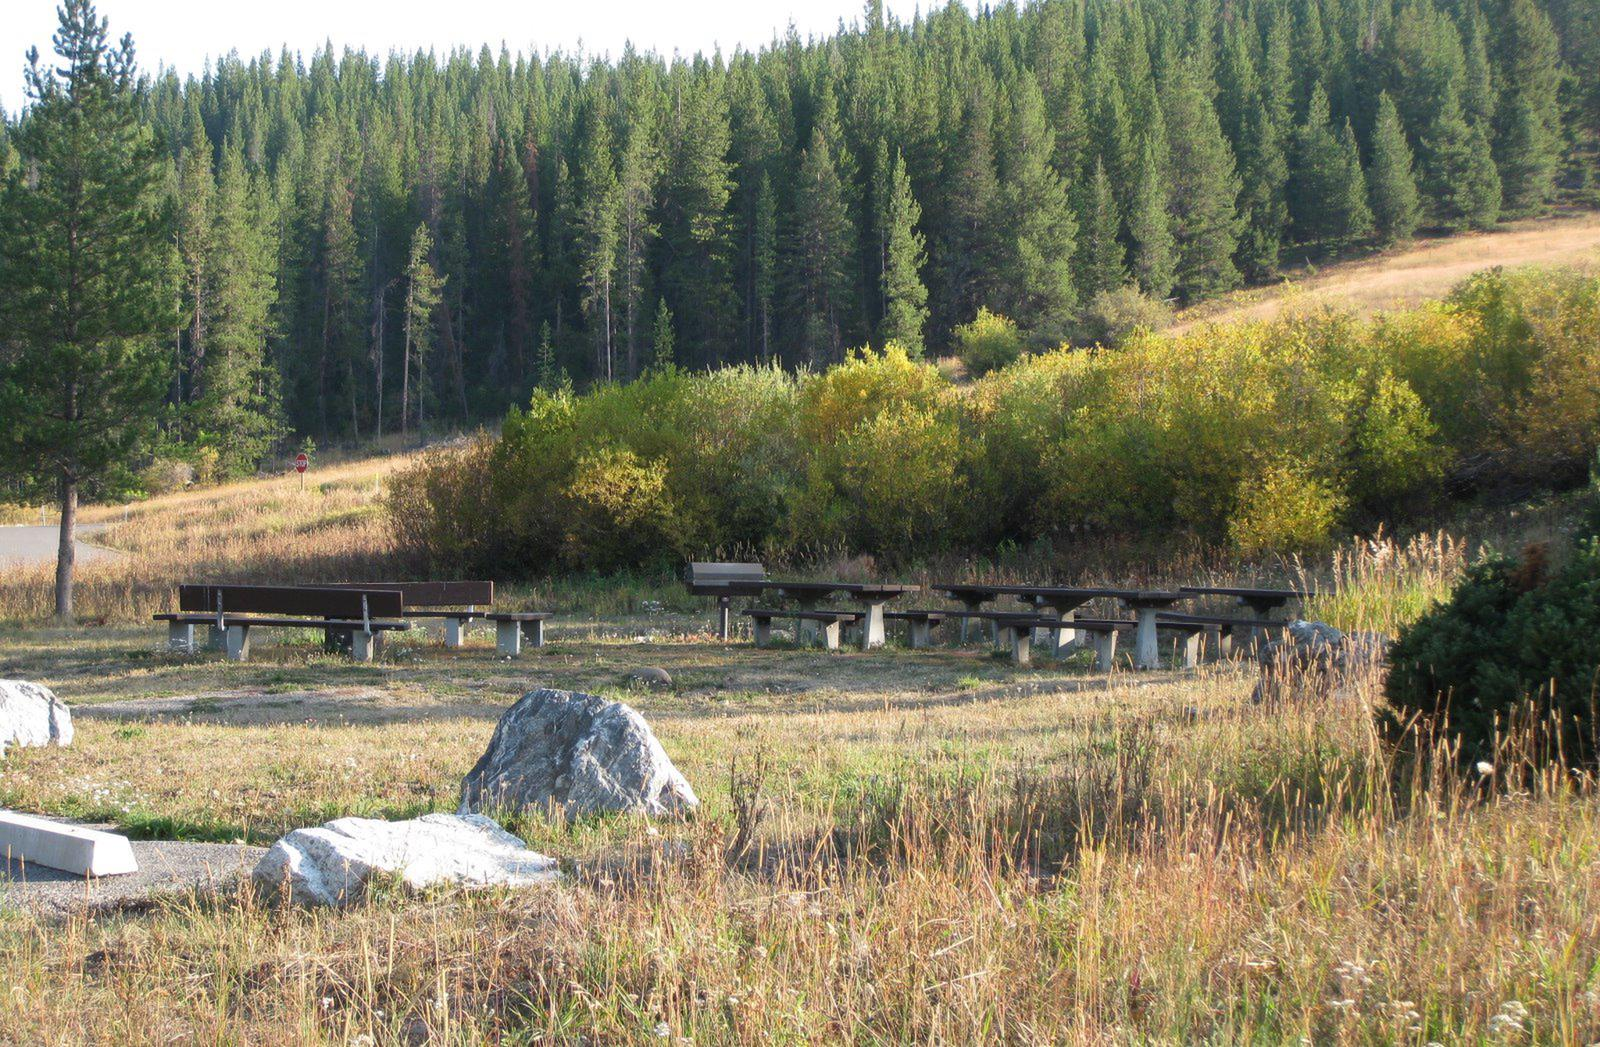 Day Use - Group Site 20, site surrounded by pine trees, picnic tables & fire ring & benchesDay Use - Group Site 20